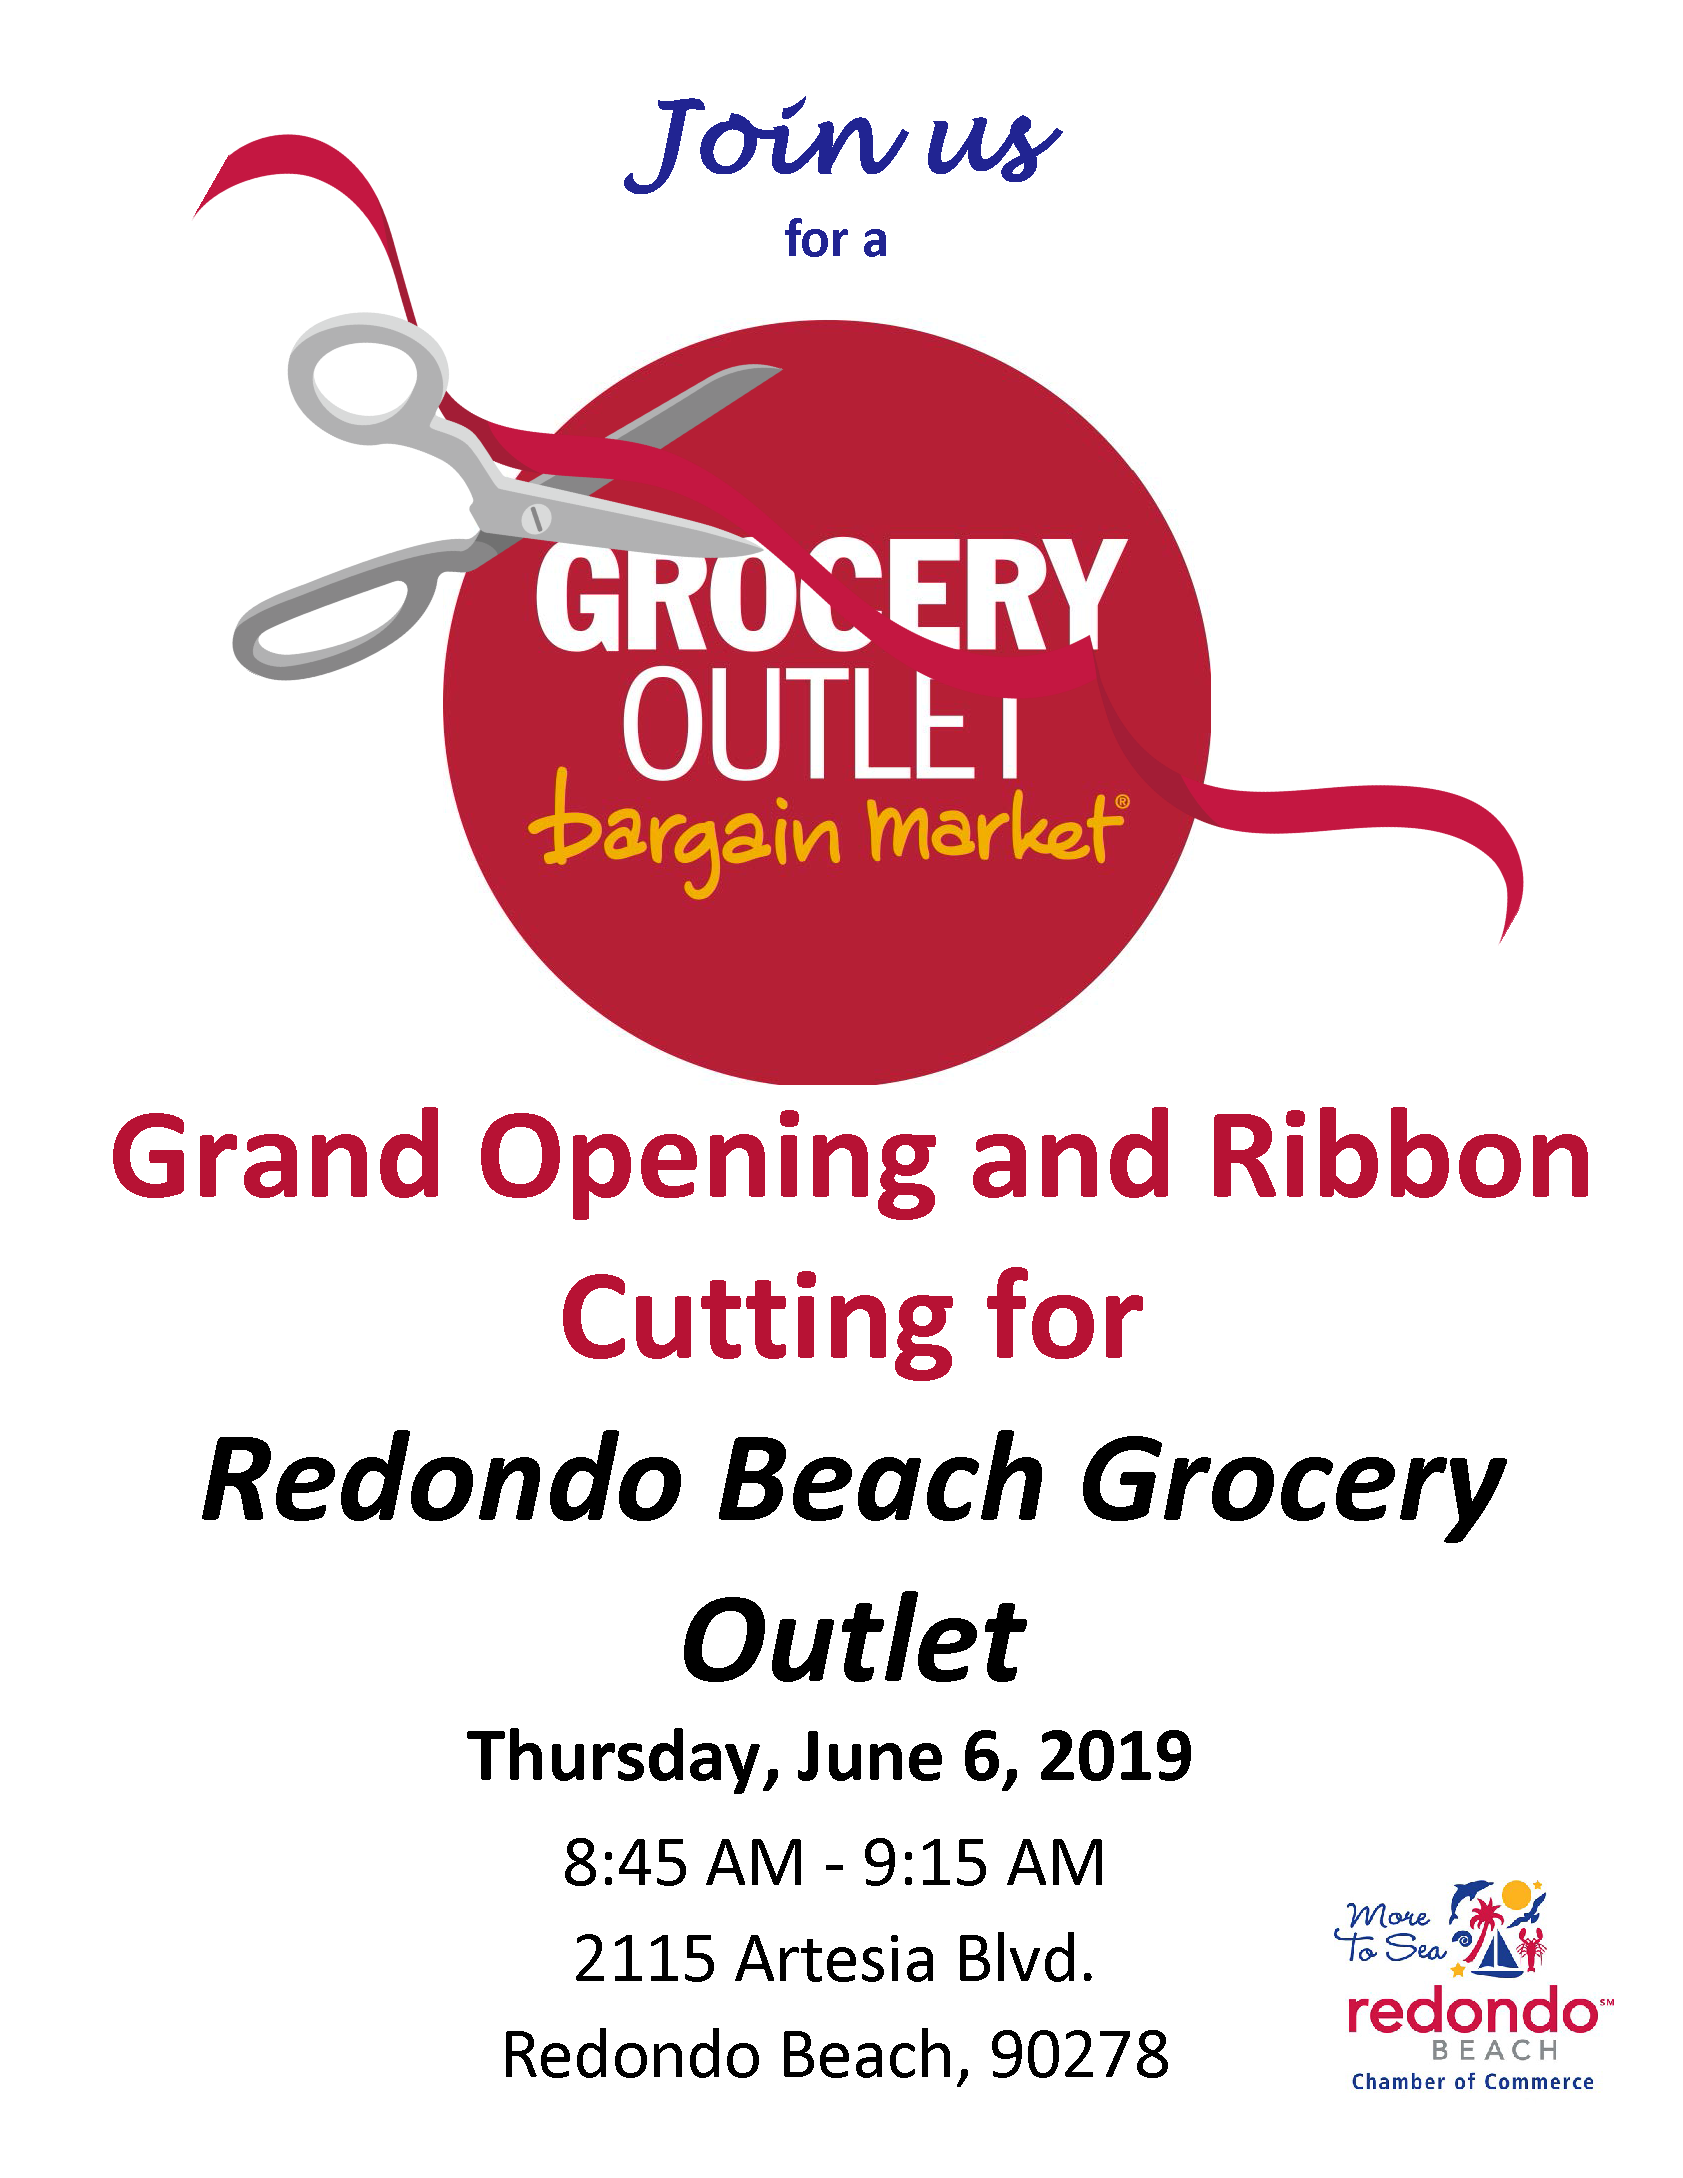 Ribbon Cutting and Grand Opening of Grocery Outlet